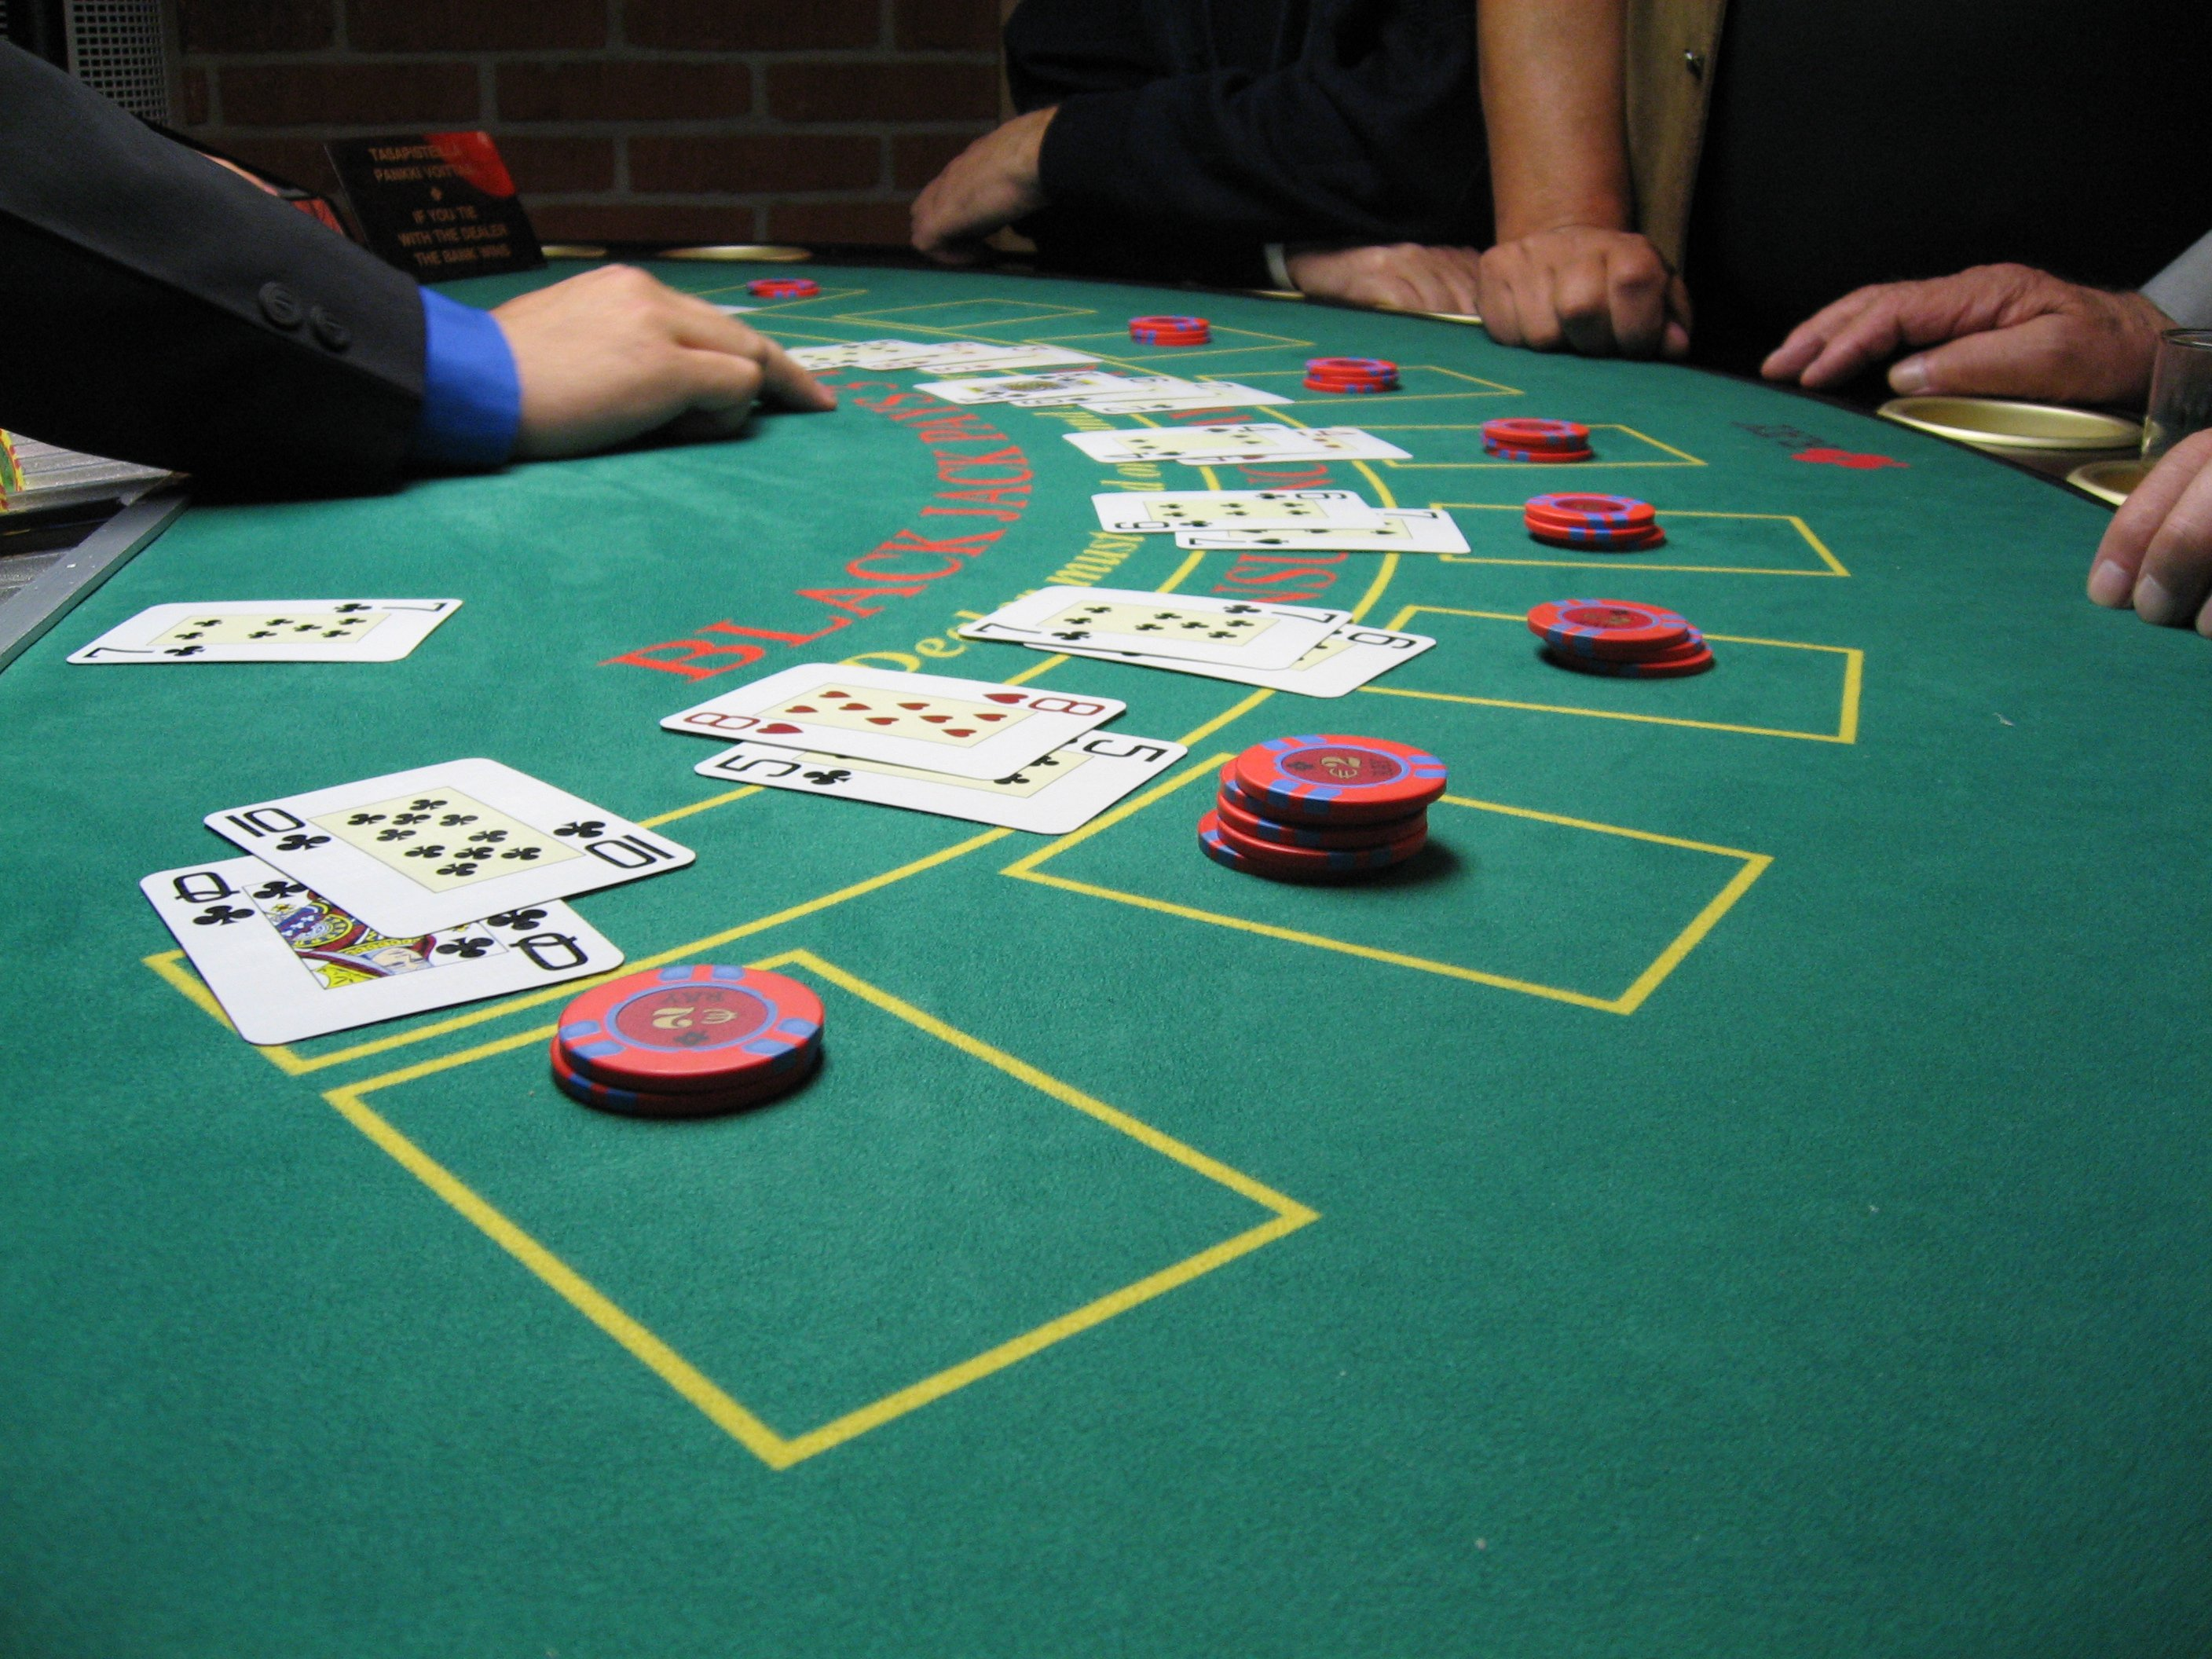 Best Blackjack Odds In Vegas